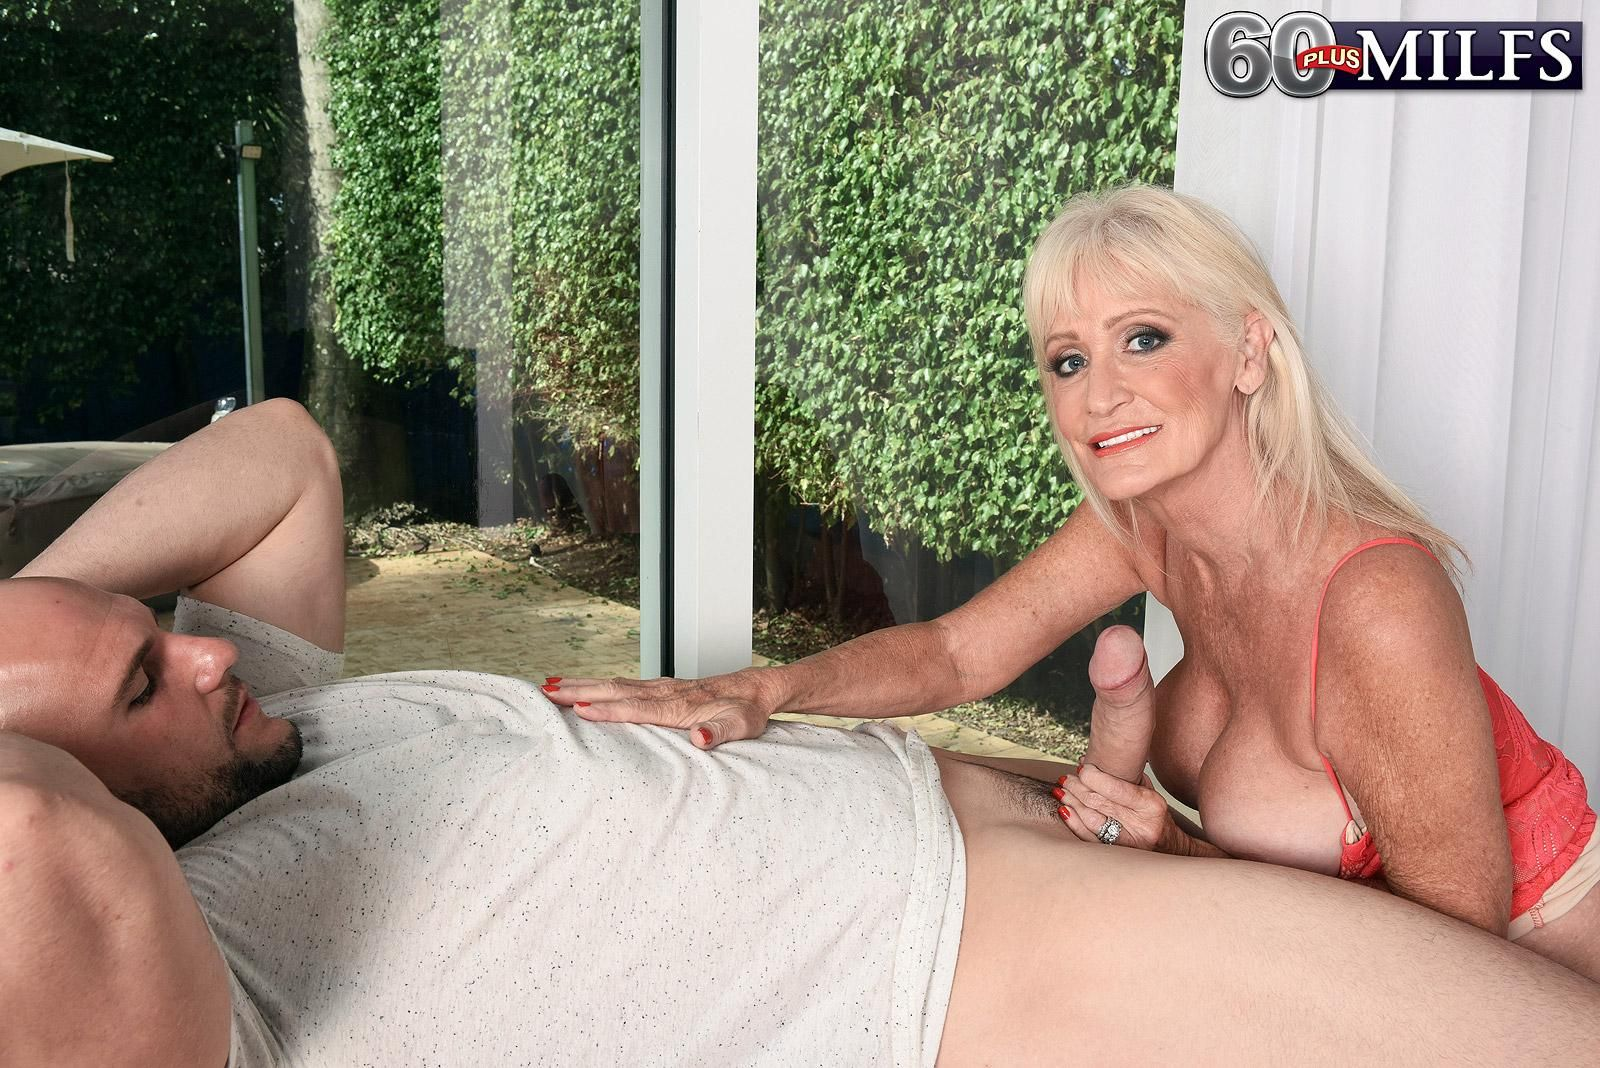 Blonde 60 Plus Milf Leah Lamour Seduces A Younger Boy With Her Big Boobs